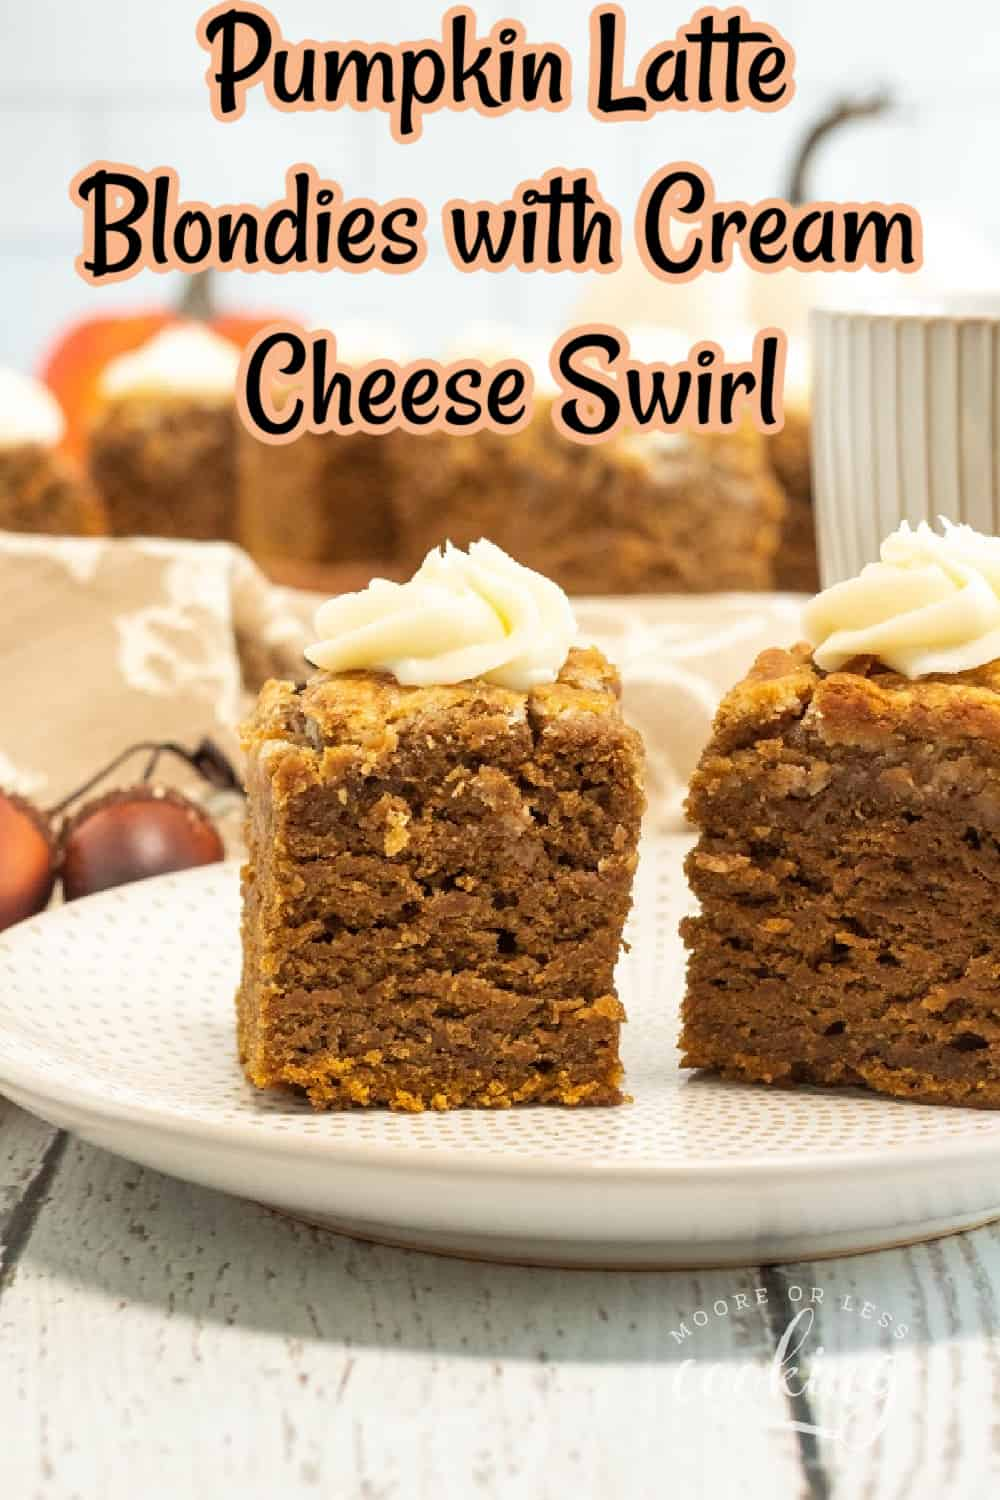 These delicious Pumpkin Latte Blondies with Cream Cheese Swirl add a touch of espresso plus the addition of sweetened cream cheese into the pumpkin batter. There's an outrageous holiday flavor in every bite! via @Mooreorlesscook